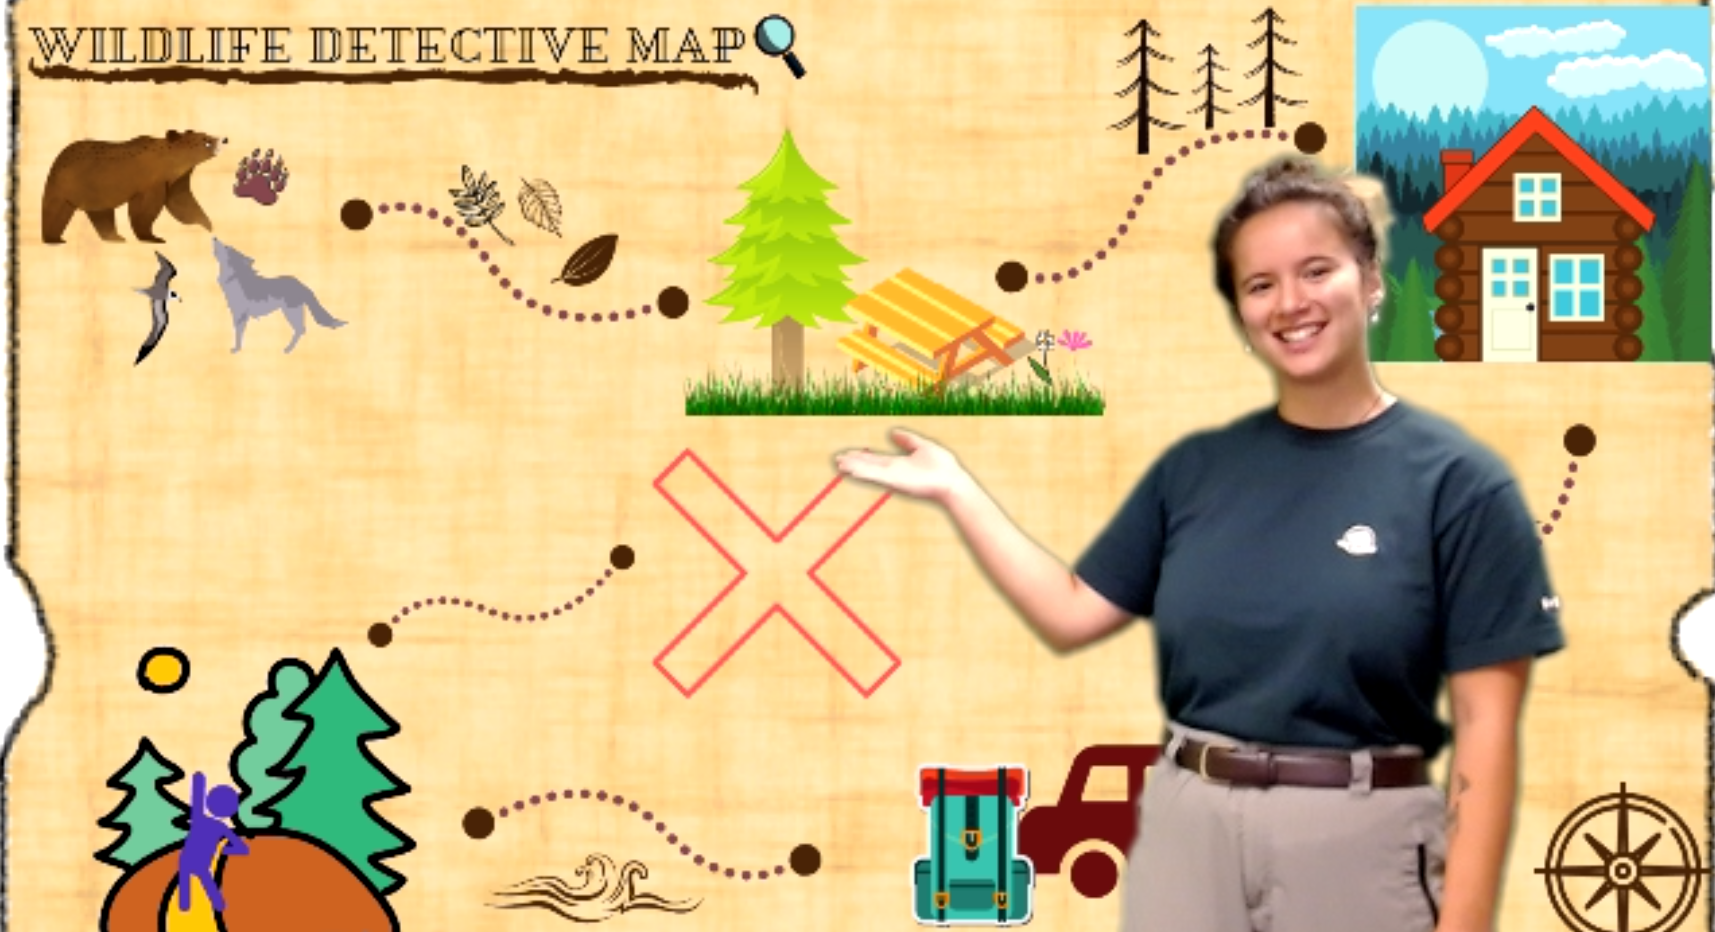 Park Ranger standing in front of a Wildlife Detective Map featuring various nature activities